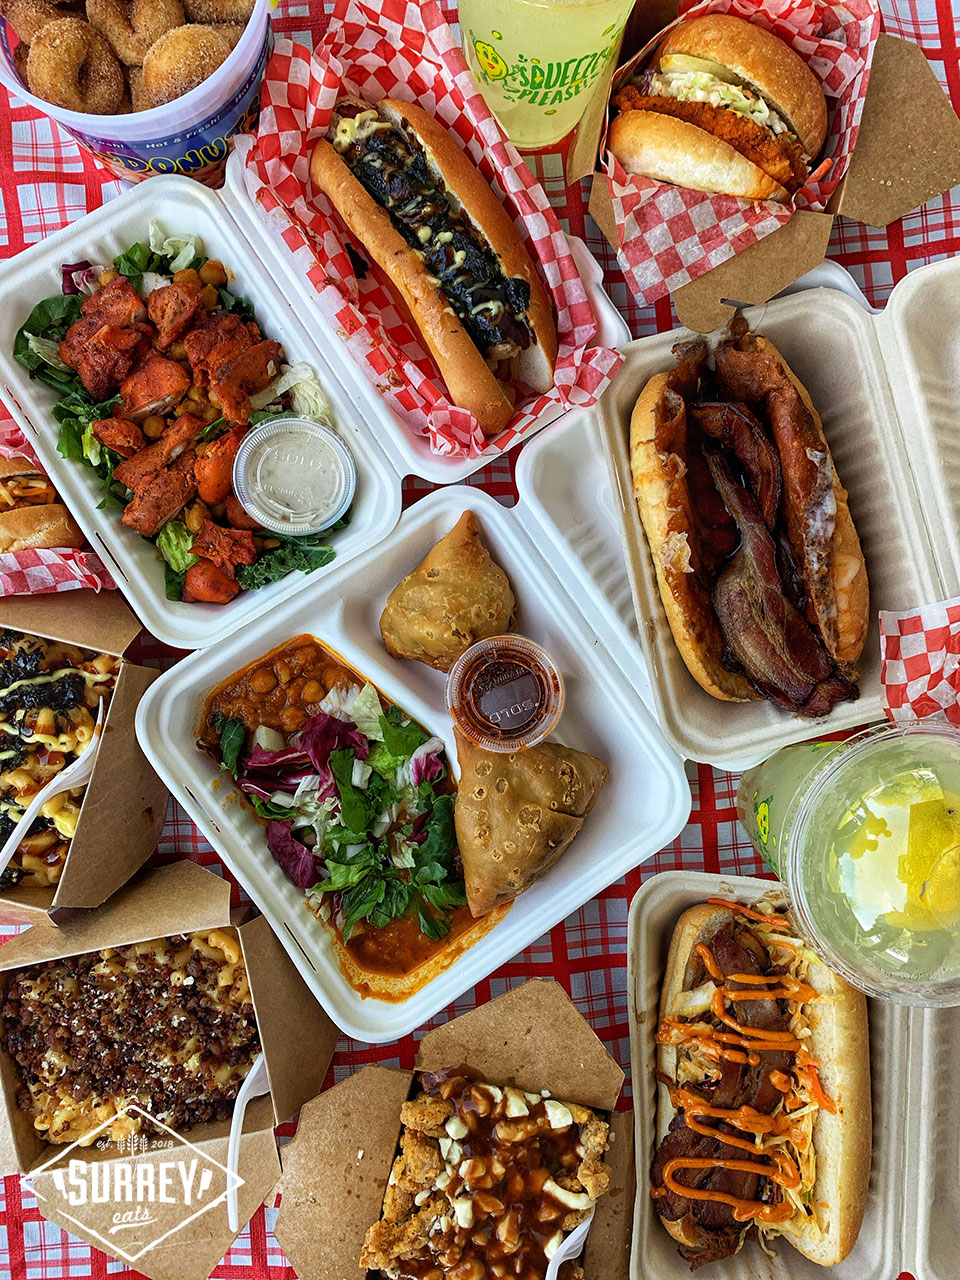 spread of food from Cloverdale food truck festival 2020